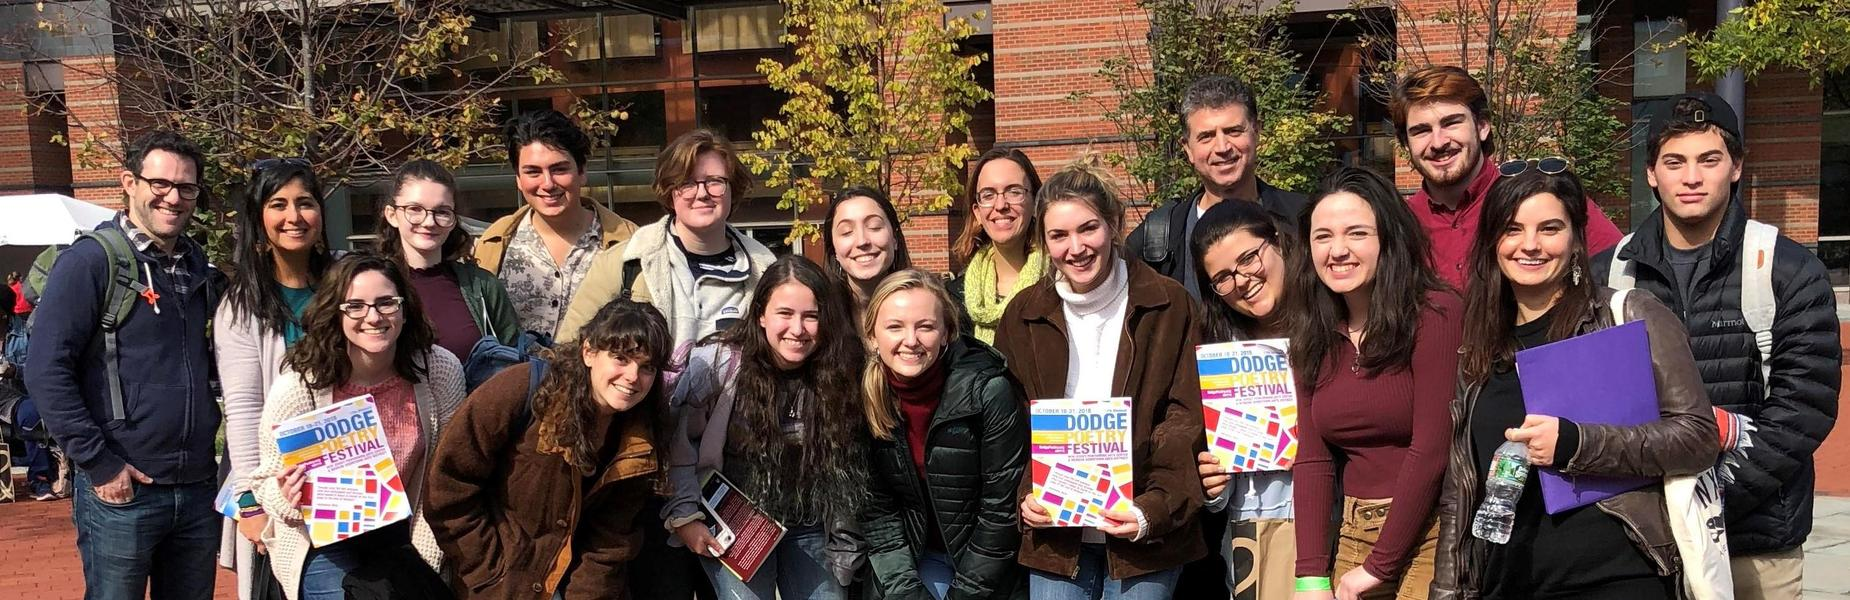 """WHS students and staff attend the Dodge Poetry Festival in Newark on Oct. 19, a celebration of eminent poets from the late 20th and early 21st centuries. """"My hope is to help students see that poetry is still an important, vital, and living art form and not one relegated to old texbooks,"""" says English teacher David Della Fera."""